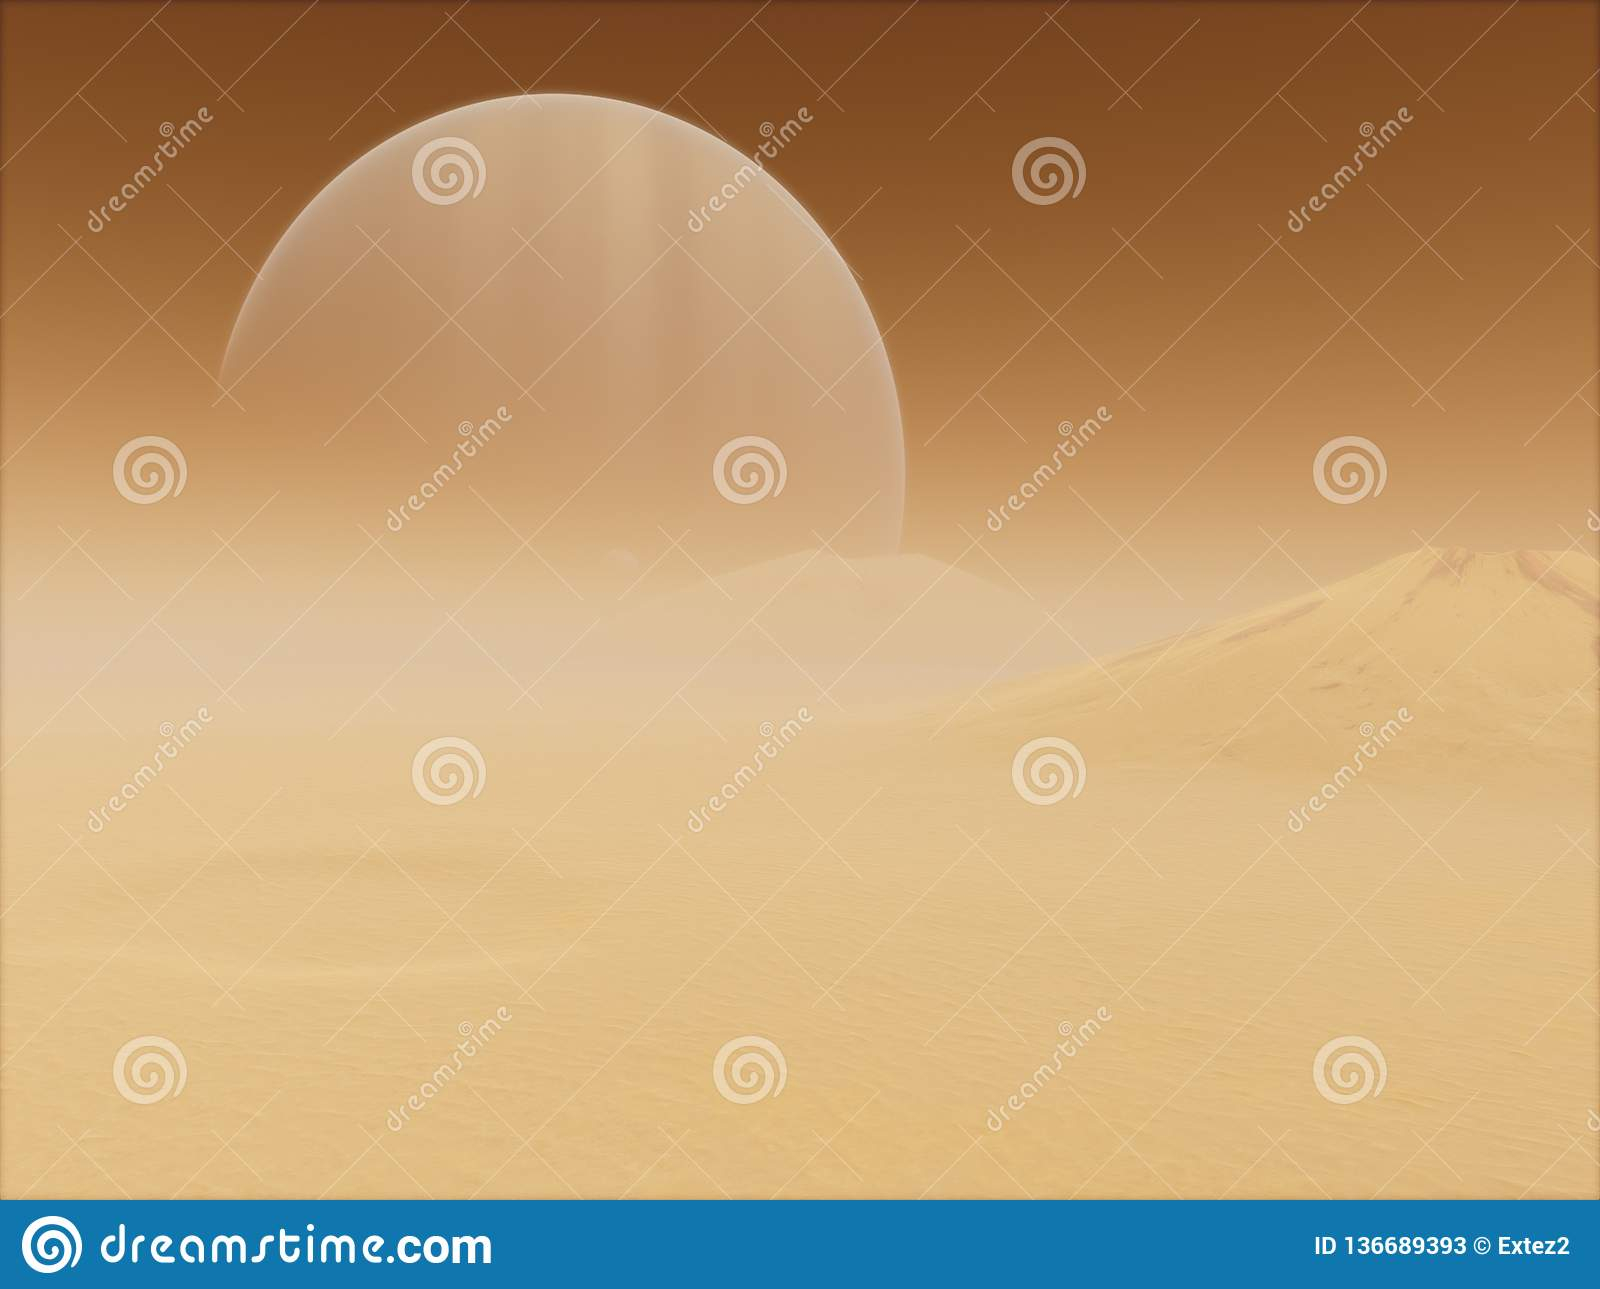 planet space colorful art star system gra nt color wallpaper elements image furnished nasa solar